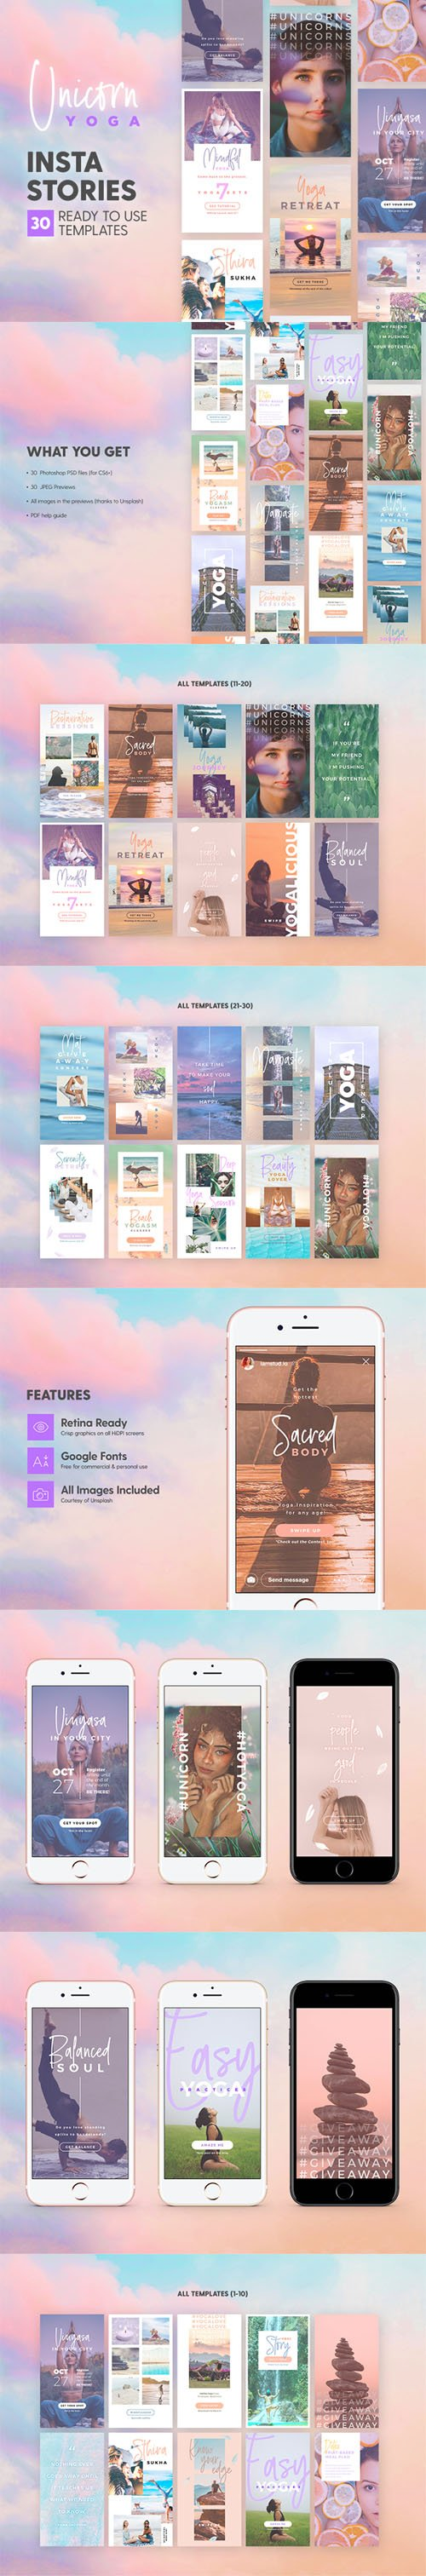 Unicorn Yoga Insta Stories - 30 Photoshop Templates for Modern Instagram Stories